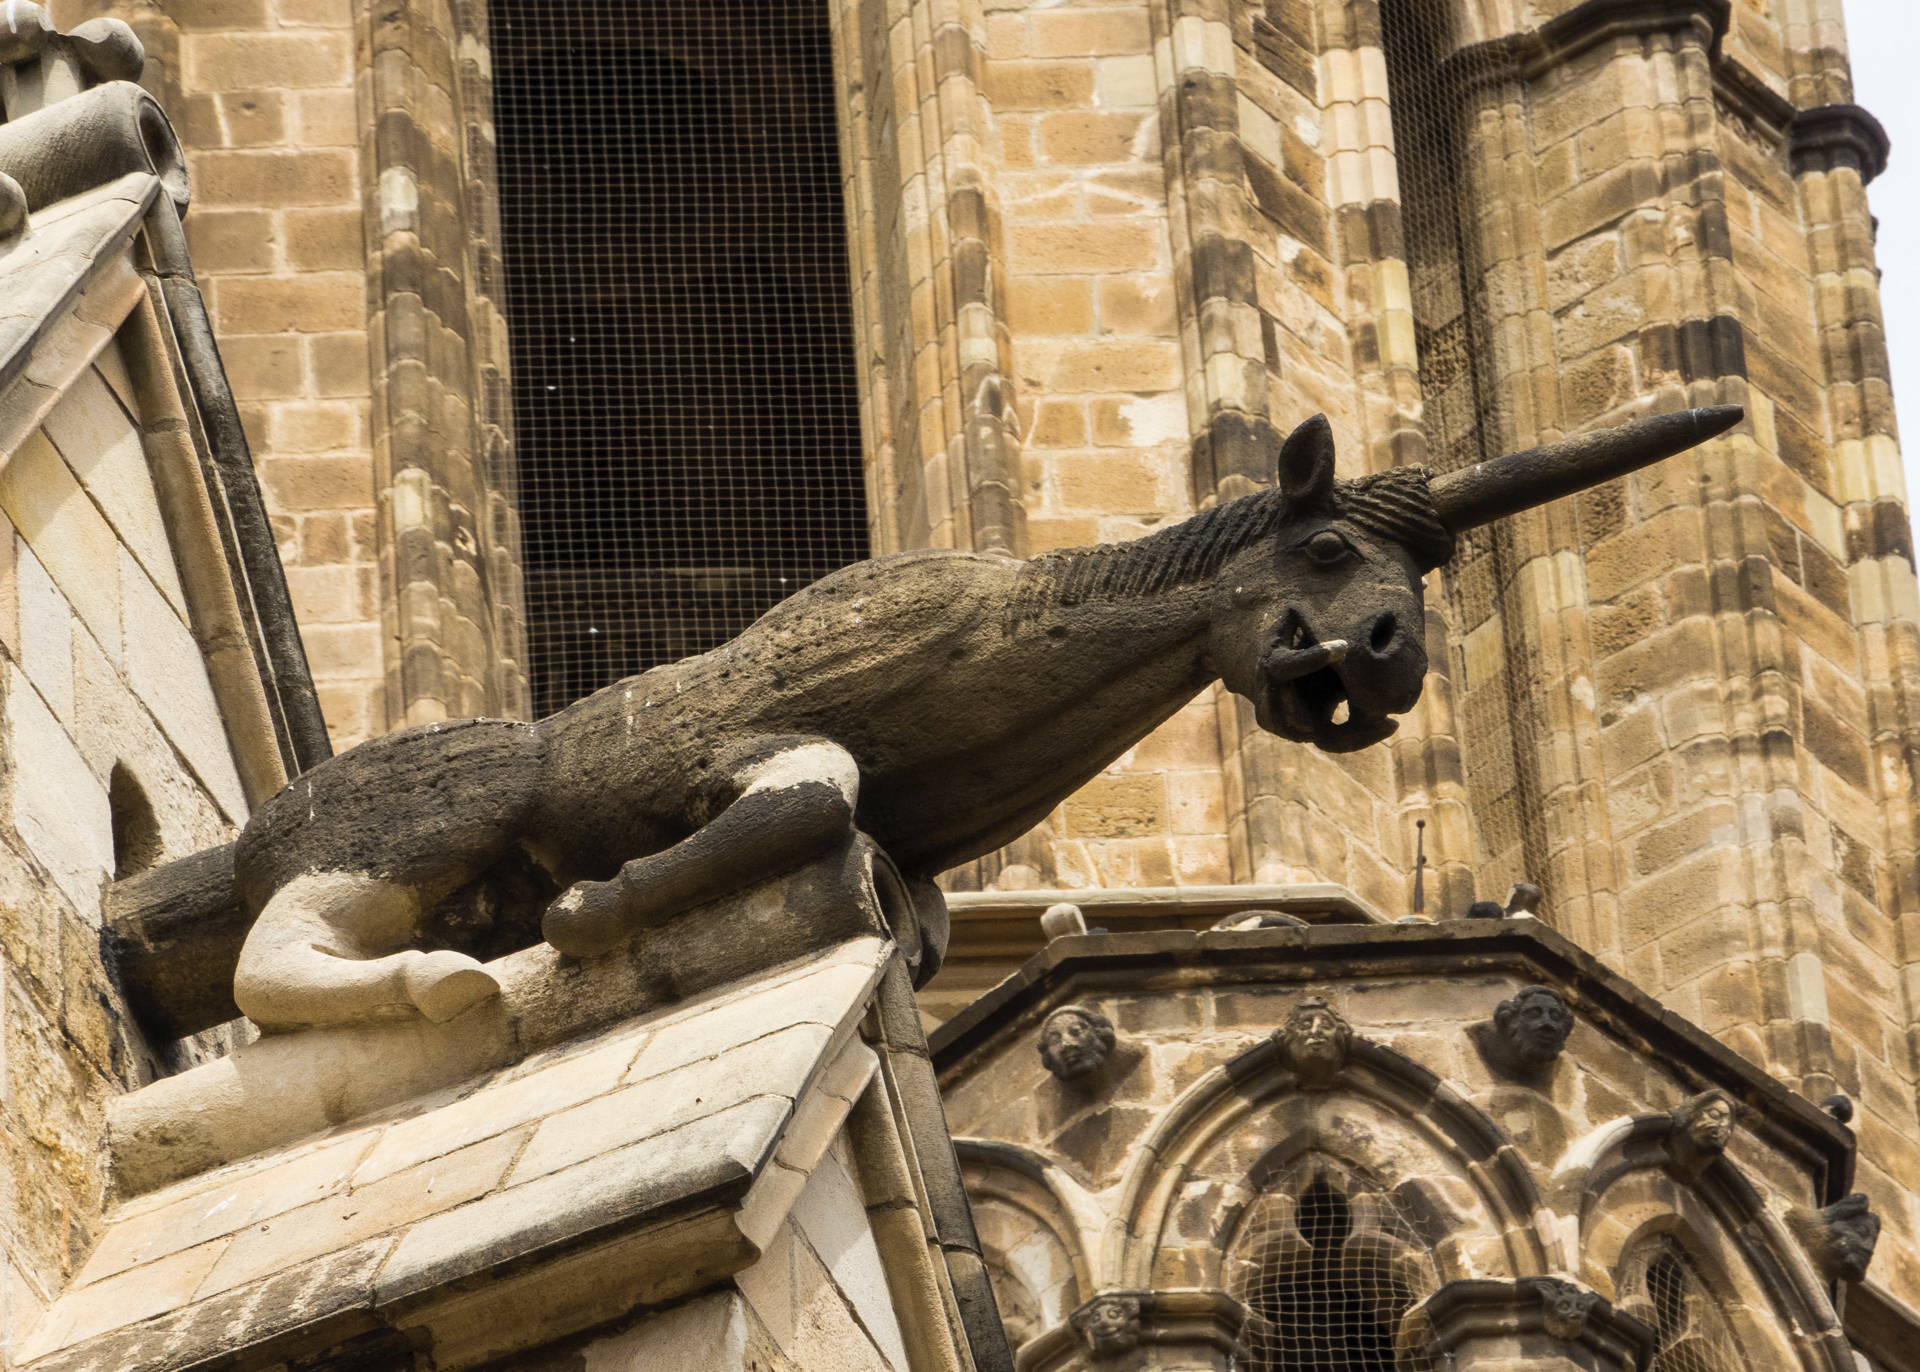 One of the gargoyles on the cathedral.